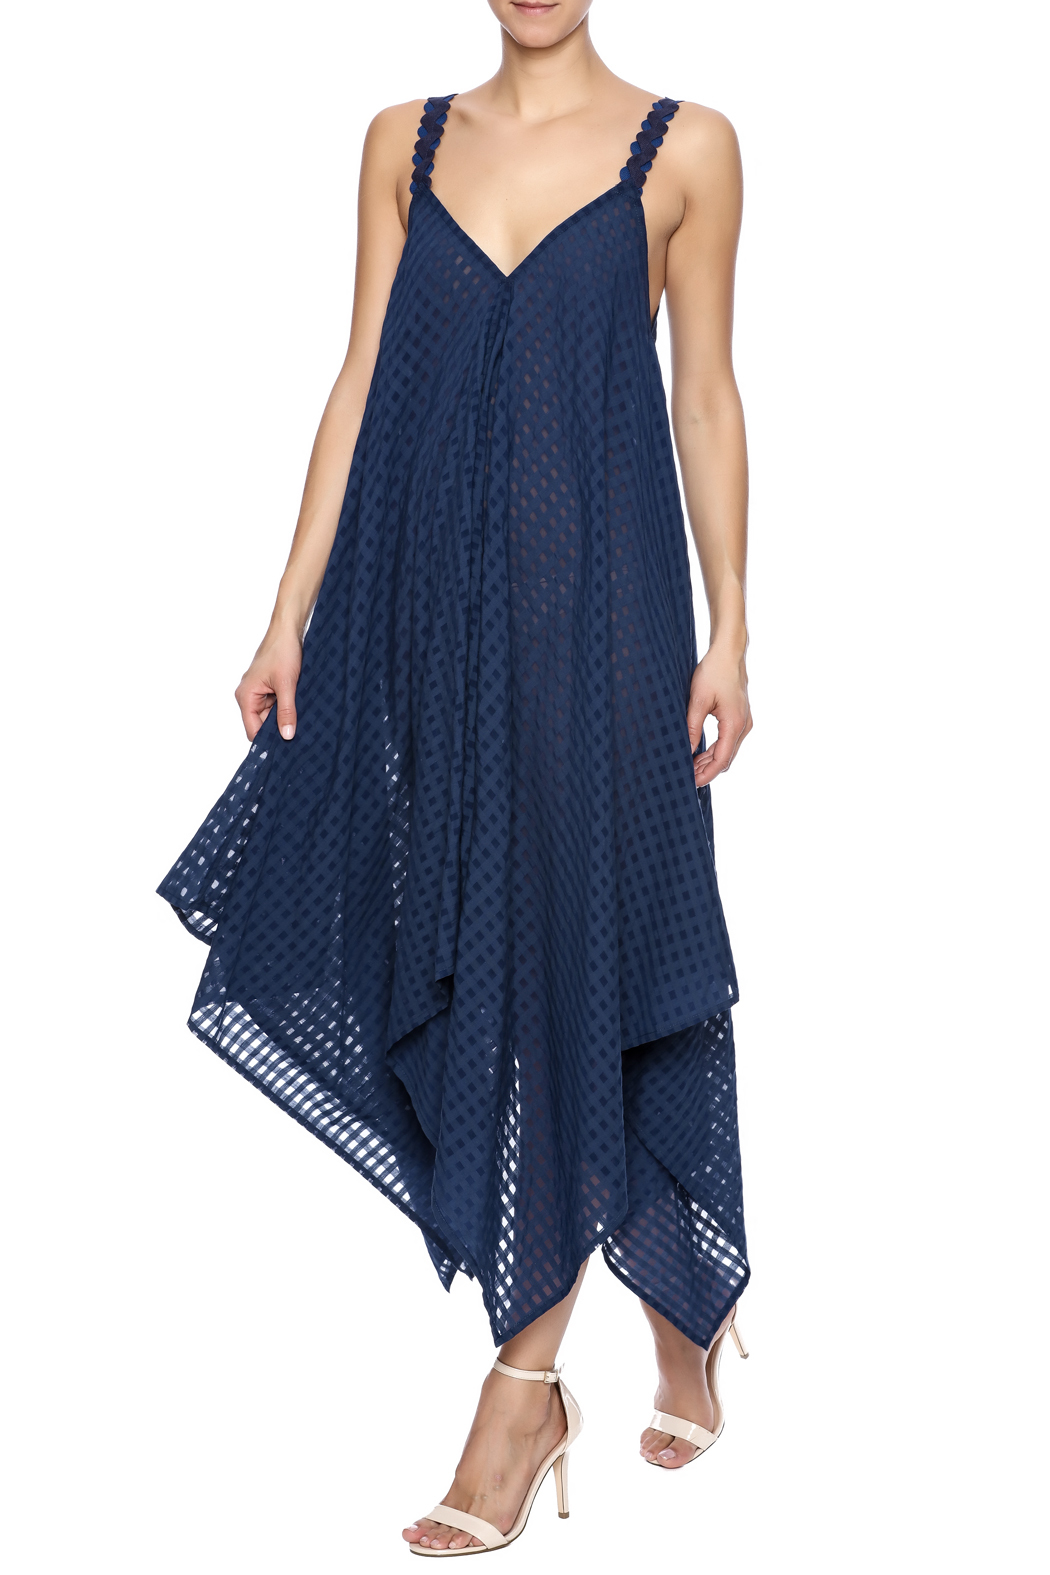 Royal Jelly Harlem Indigo Mimi Dress - Main Image